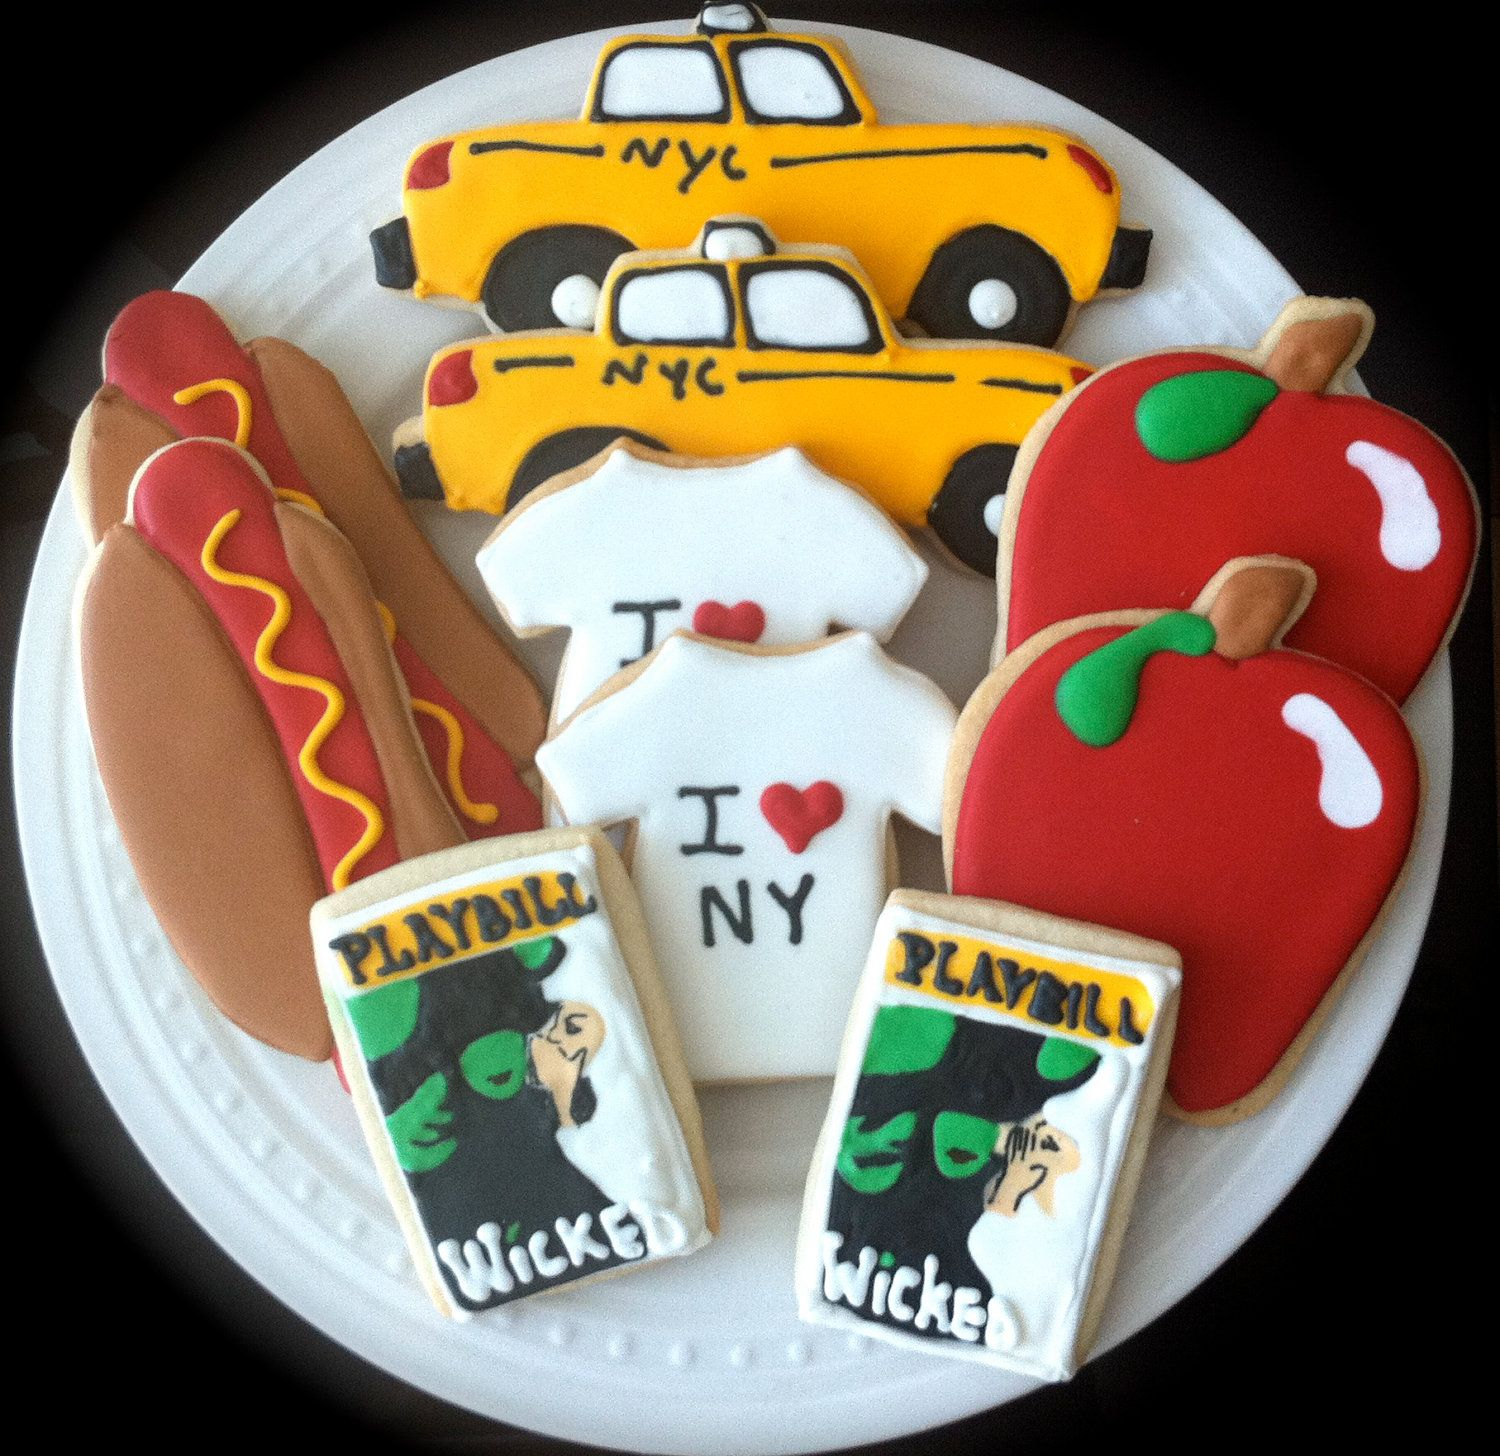 Decorated New York City Cookies I Heart Nyc Great Wedding Favors 48 00 Via Etsy New York Cookies New York Theme Party New York Party